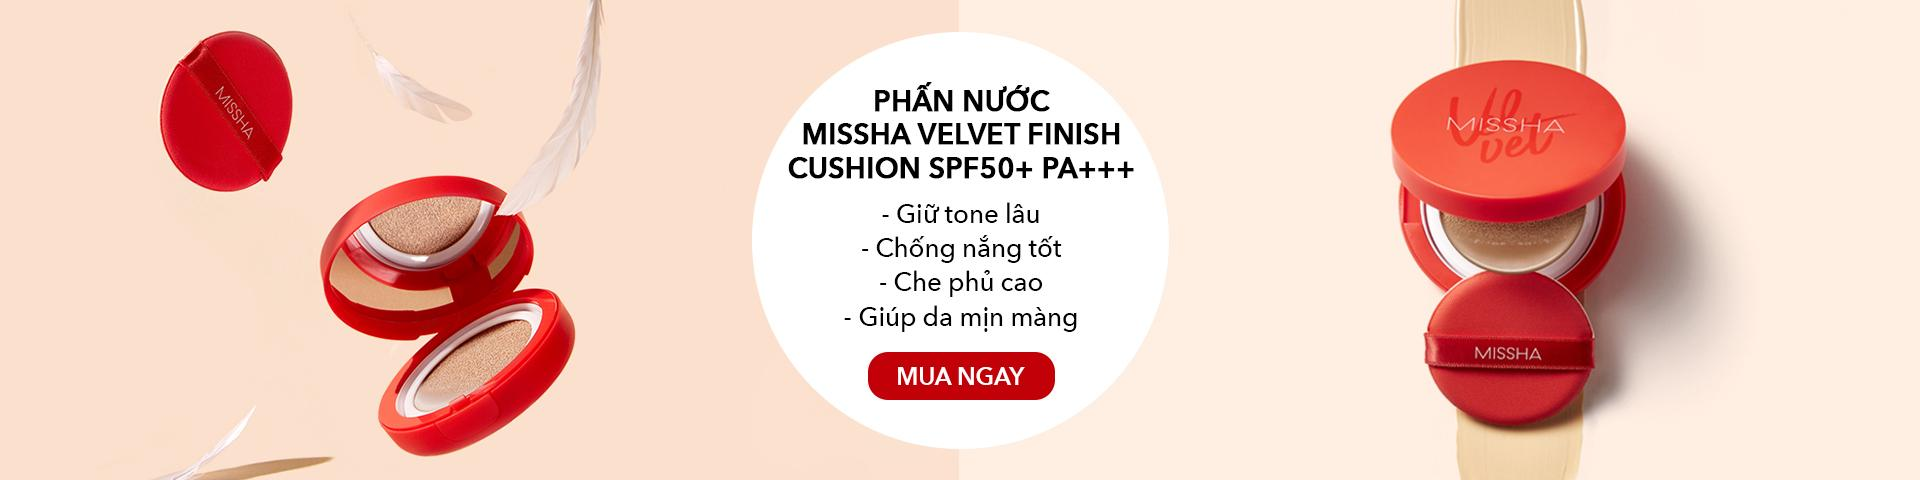 Phấn Nước MISSHA Velvet Finish Cushion